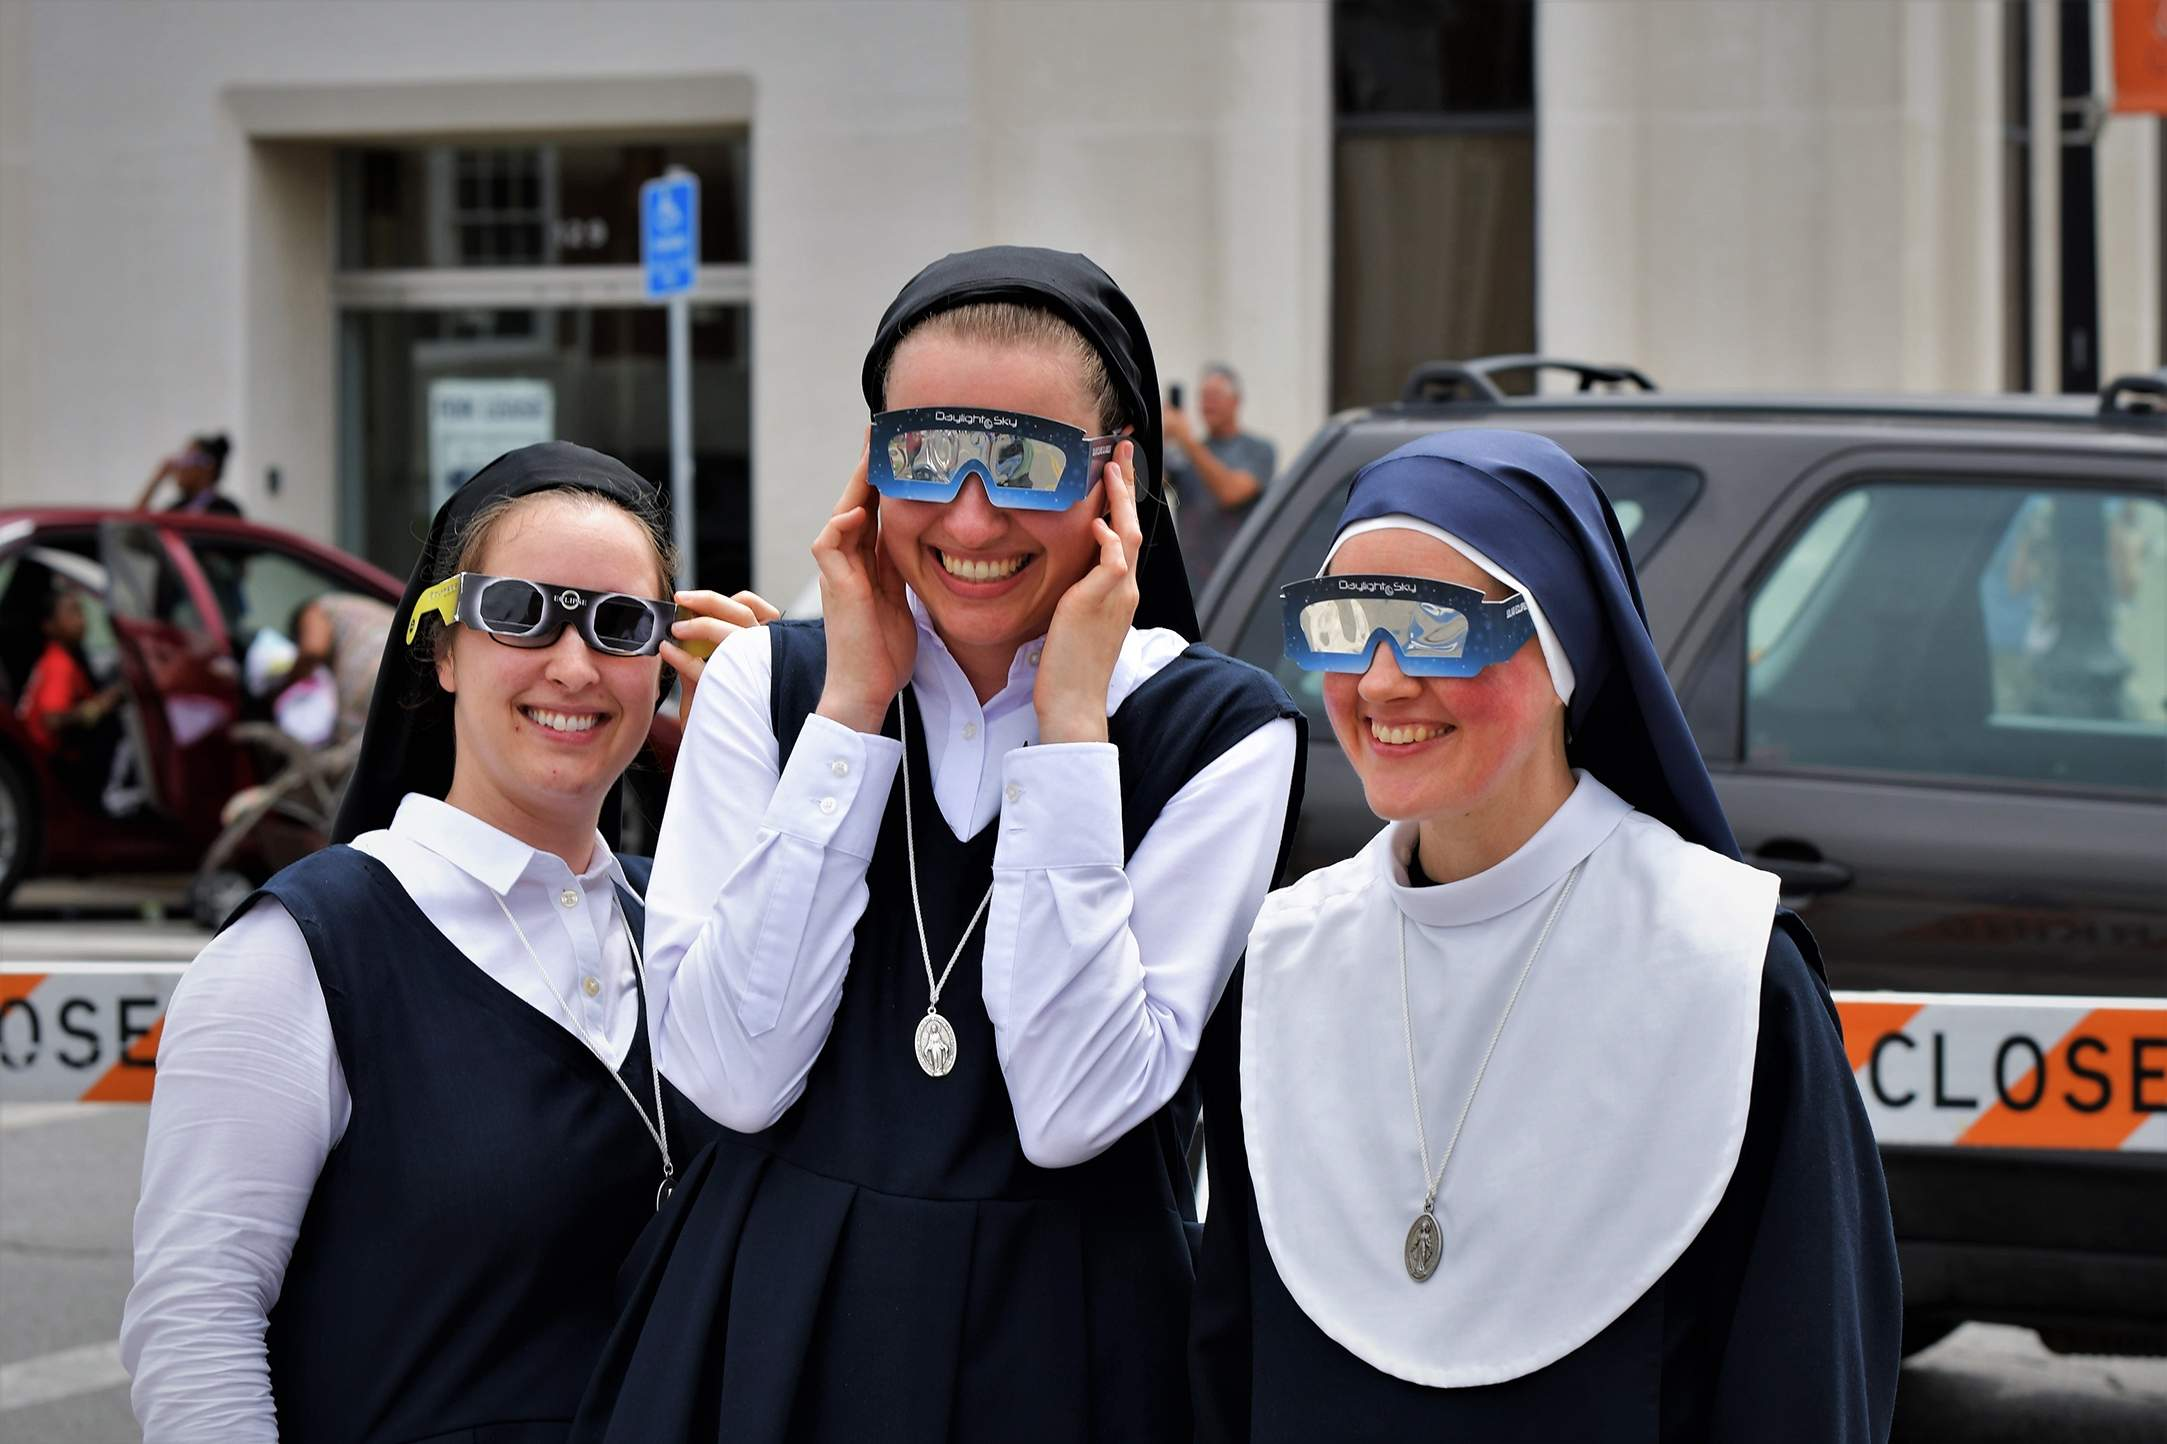 Local nuns prepare for the eclipse at the Independence Square. [David M. Rainey/Special to The Examiner]